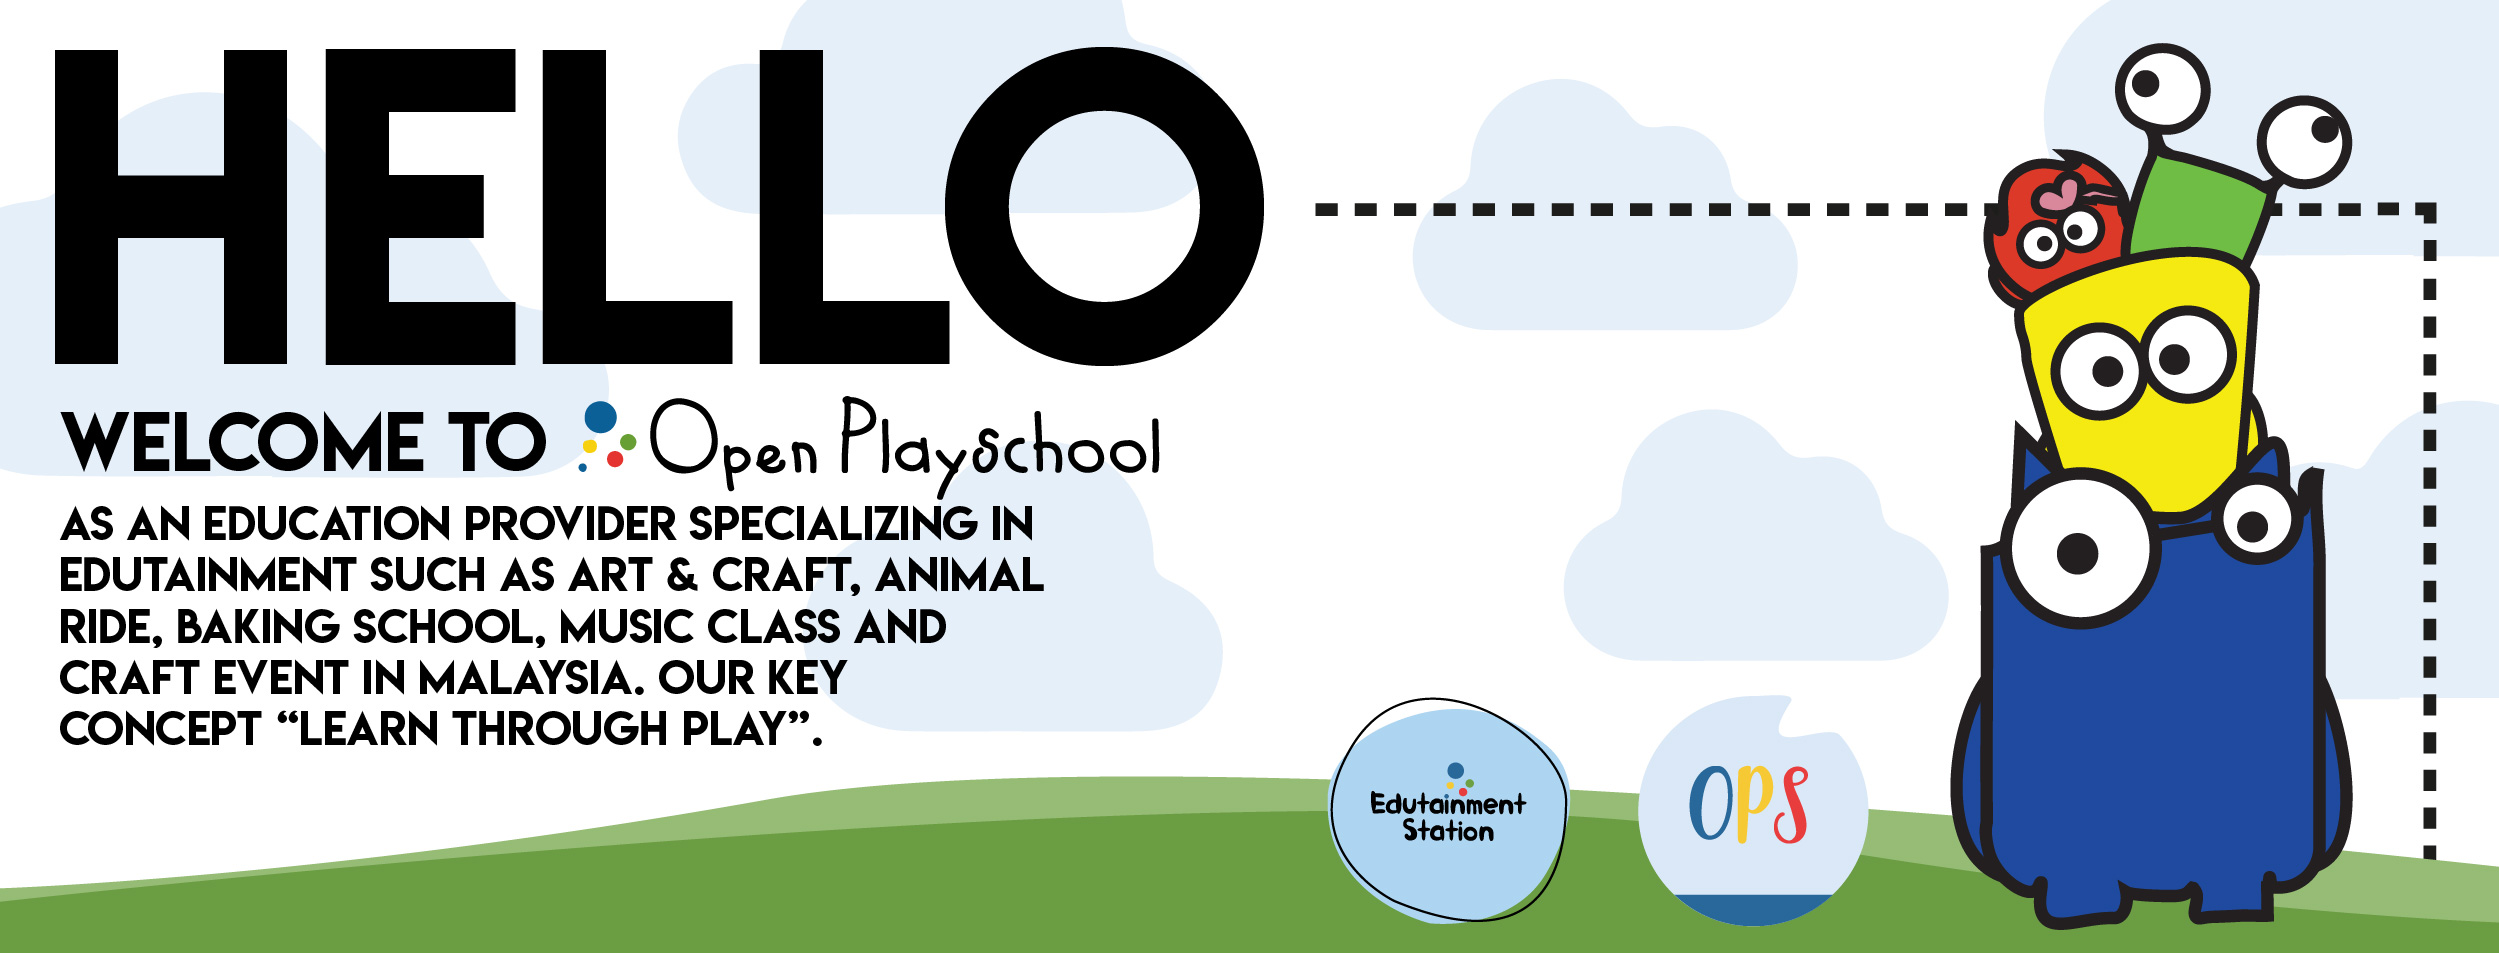 Open Playschool |